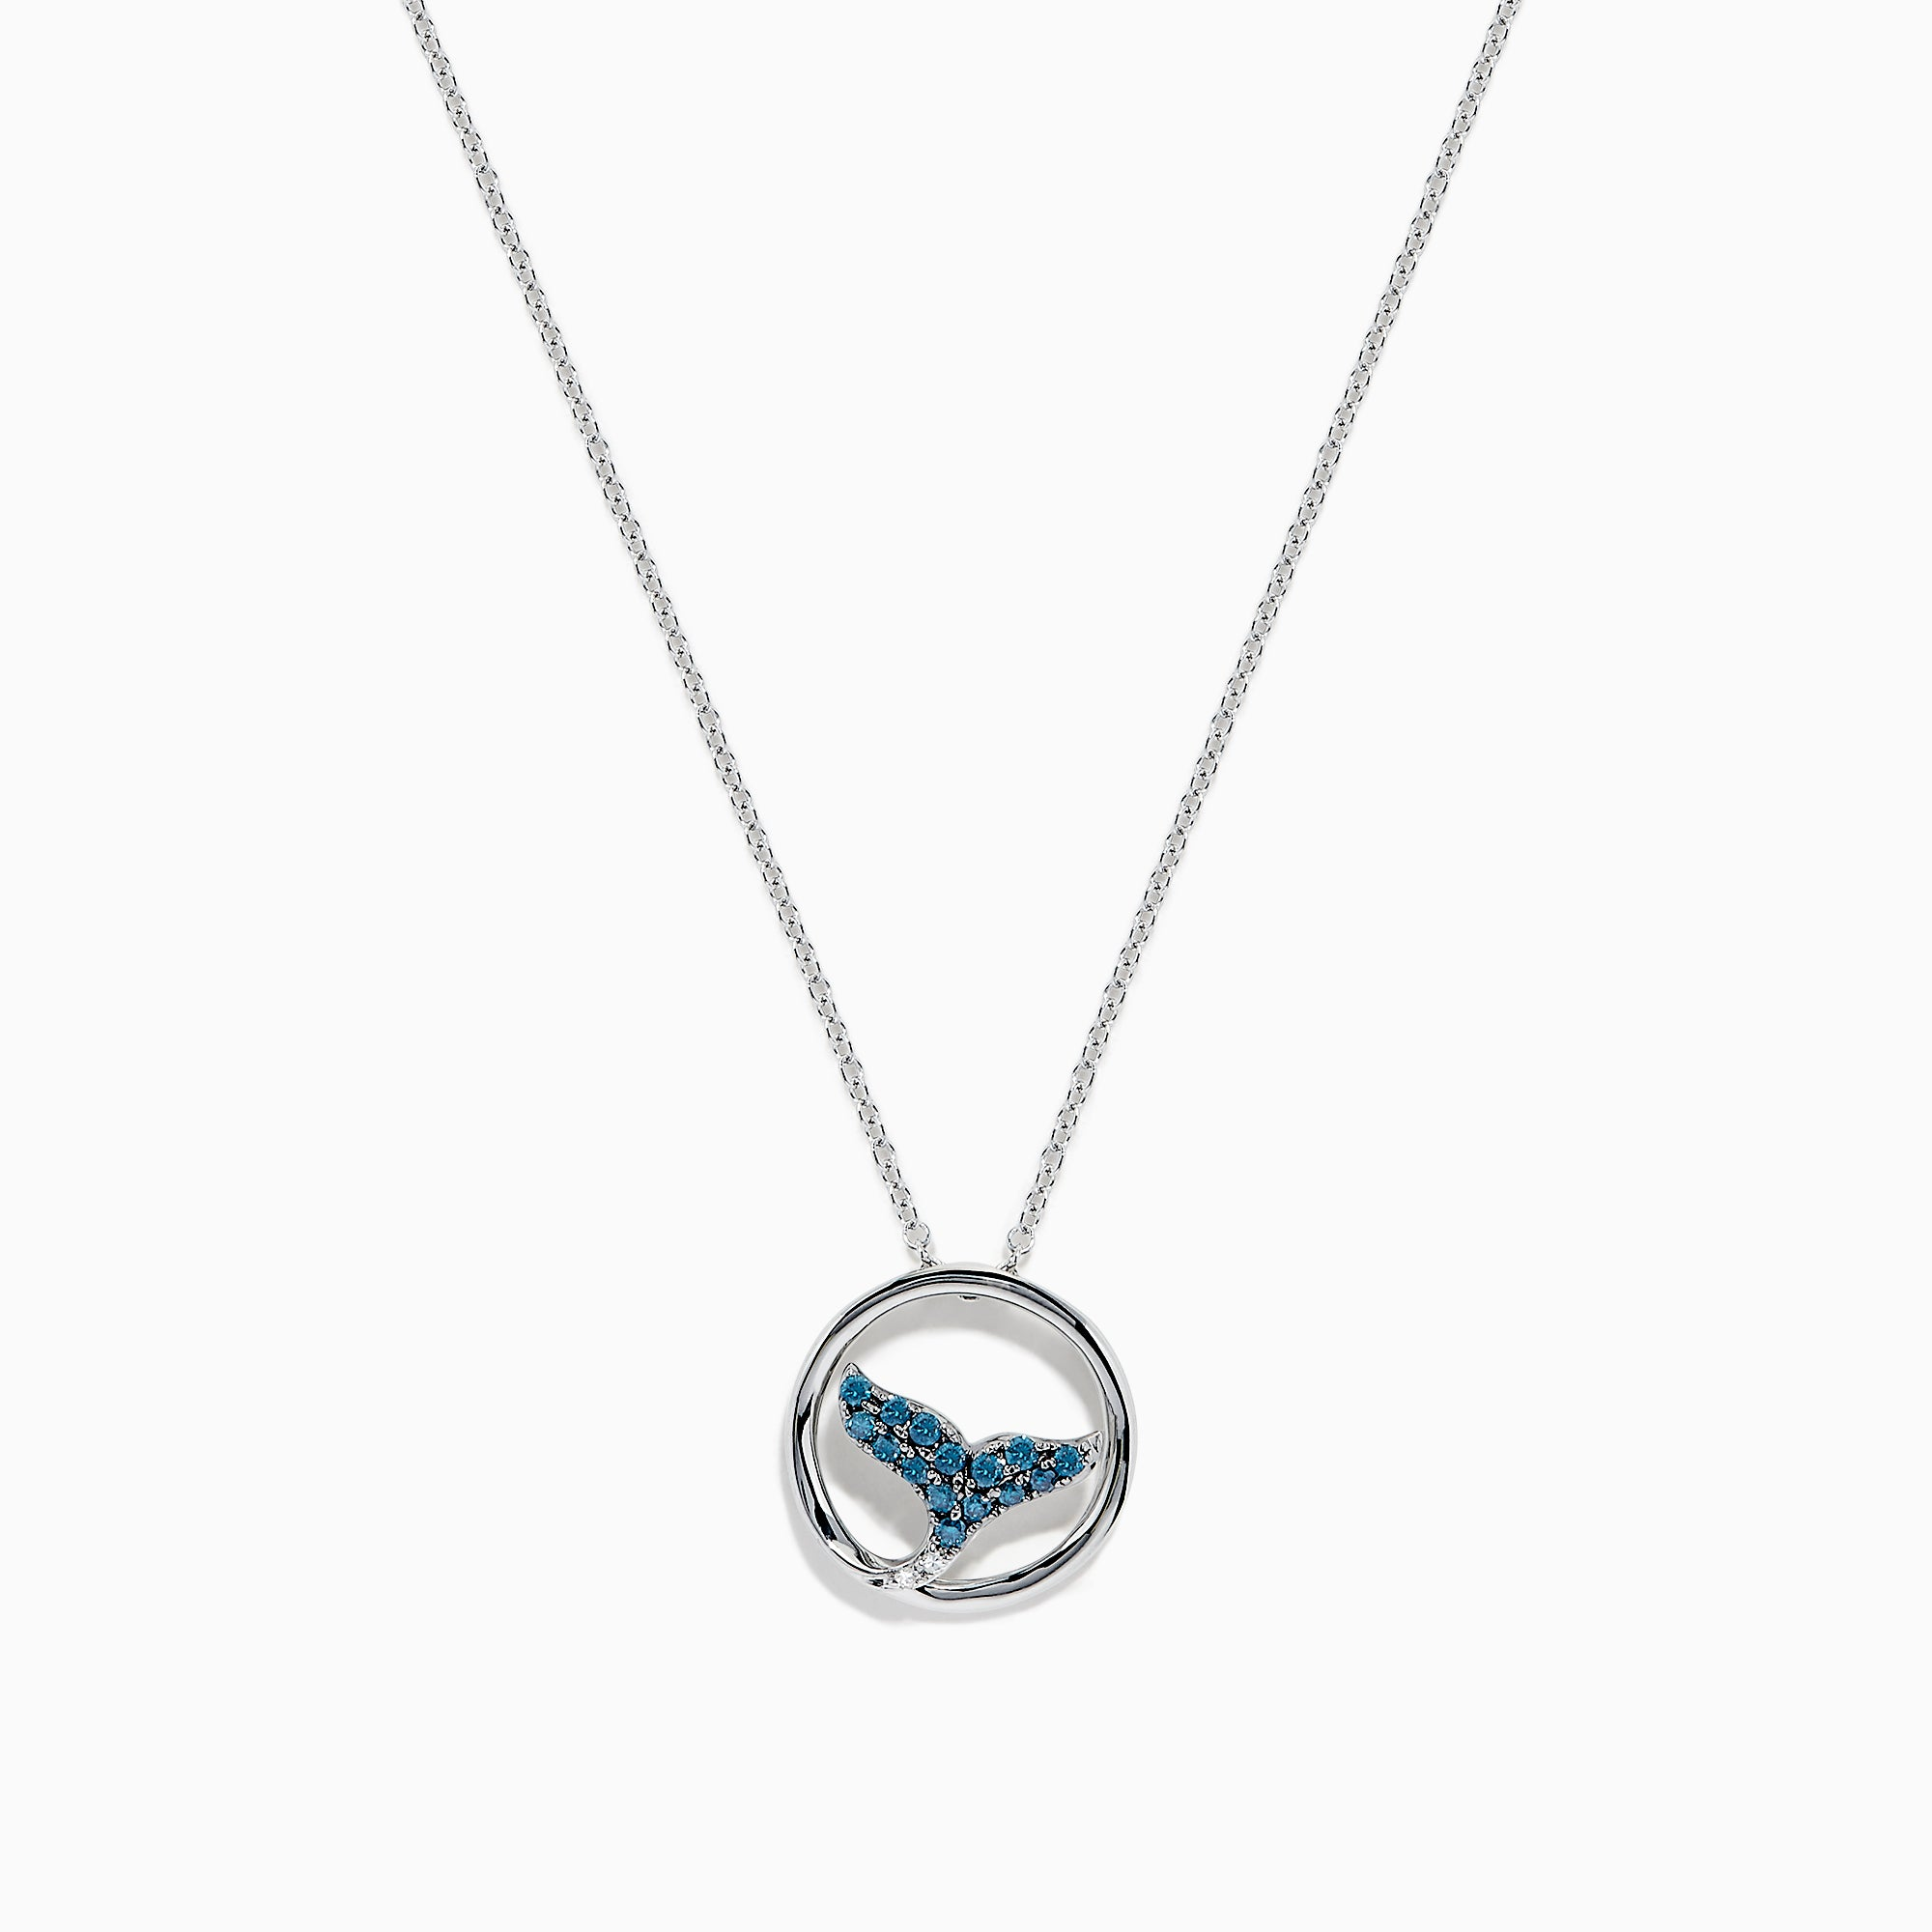 Effy 14K White Gold Blue and White Diamond Whale's Tail Pendant, 0.17 TCW